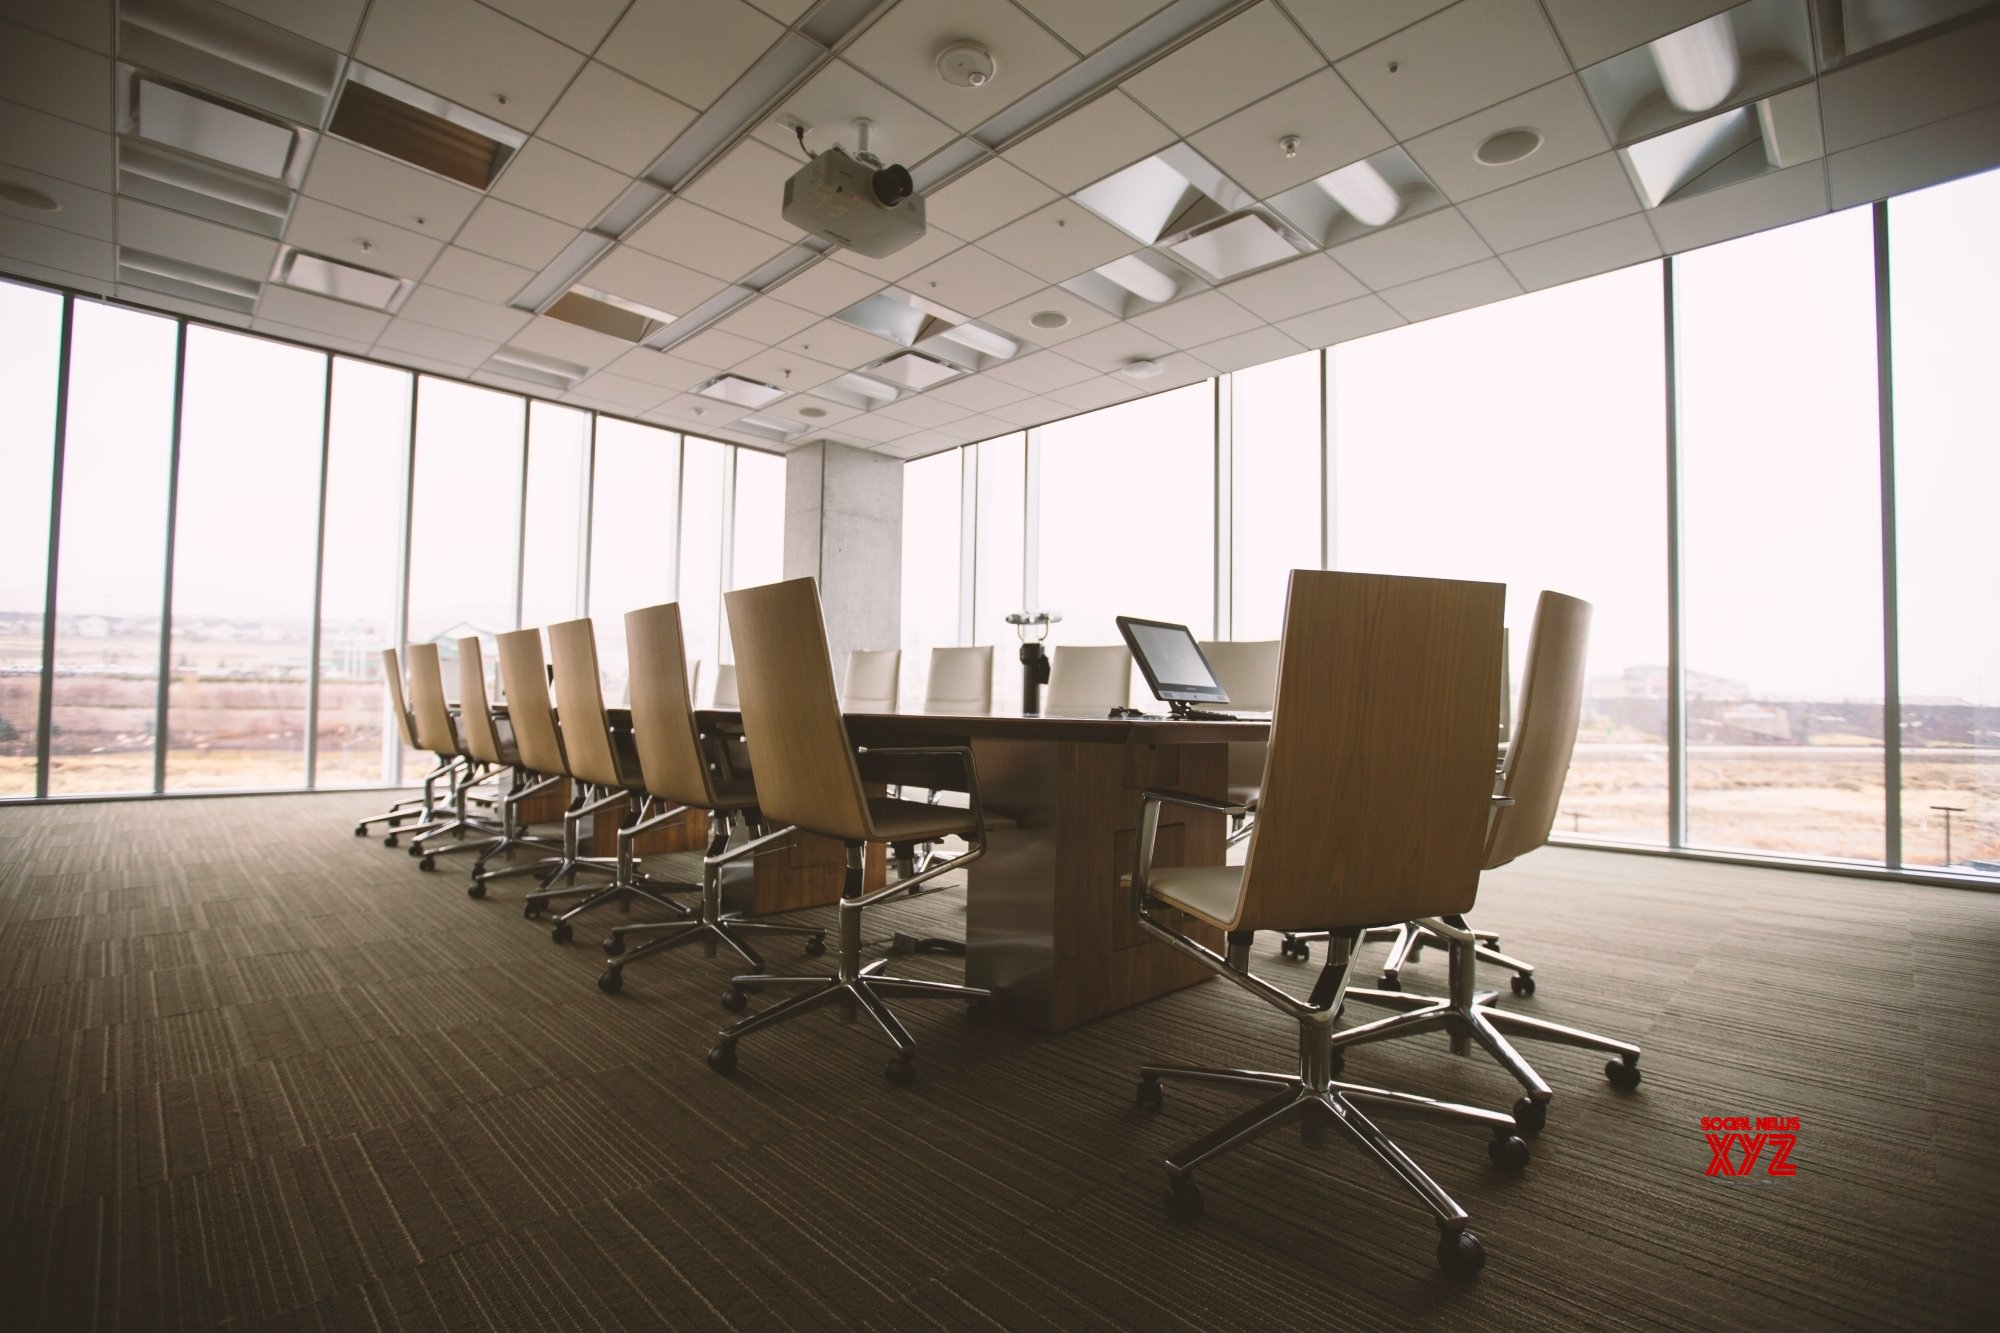 India's office space grows in 2020 with deals worth $3.1 bn: Report